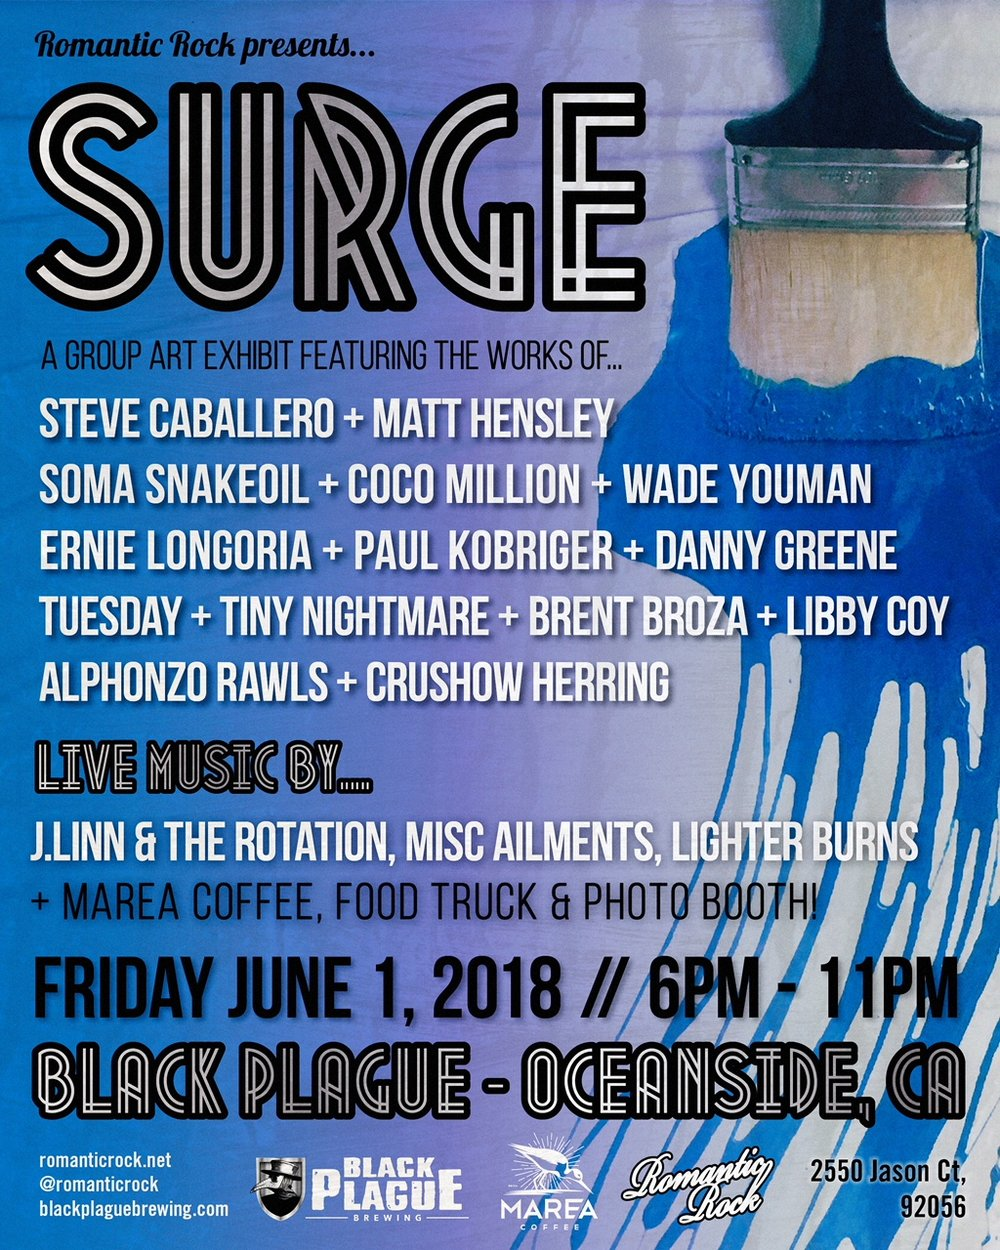 June 1, 2018 - SURGE Art Show, San Diego